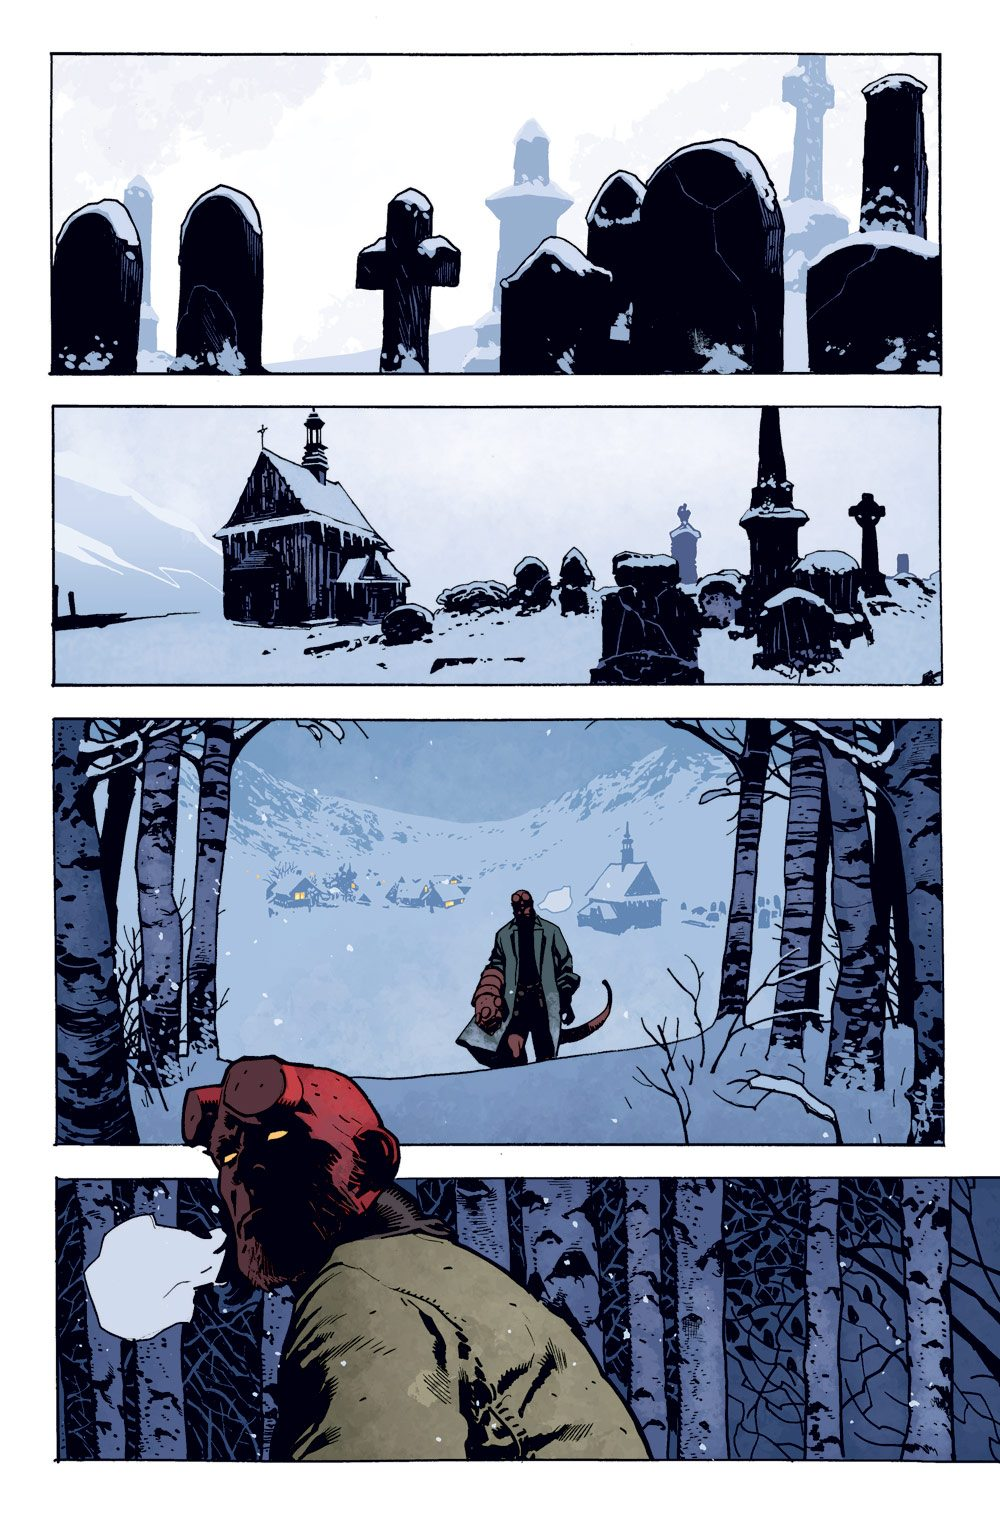 HBYKRMP PG 01 SOL - Exclusive Preview of Mike Mignola and Adam Hughes' Hellboy: Krampusnacht